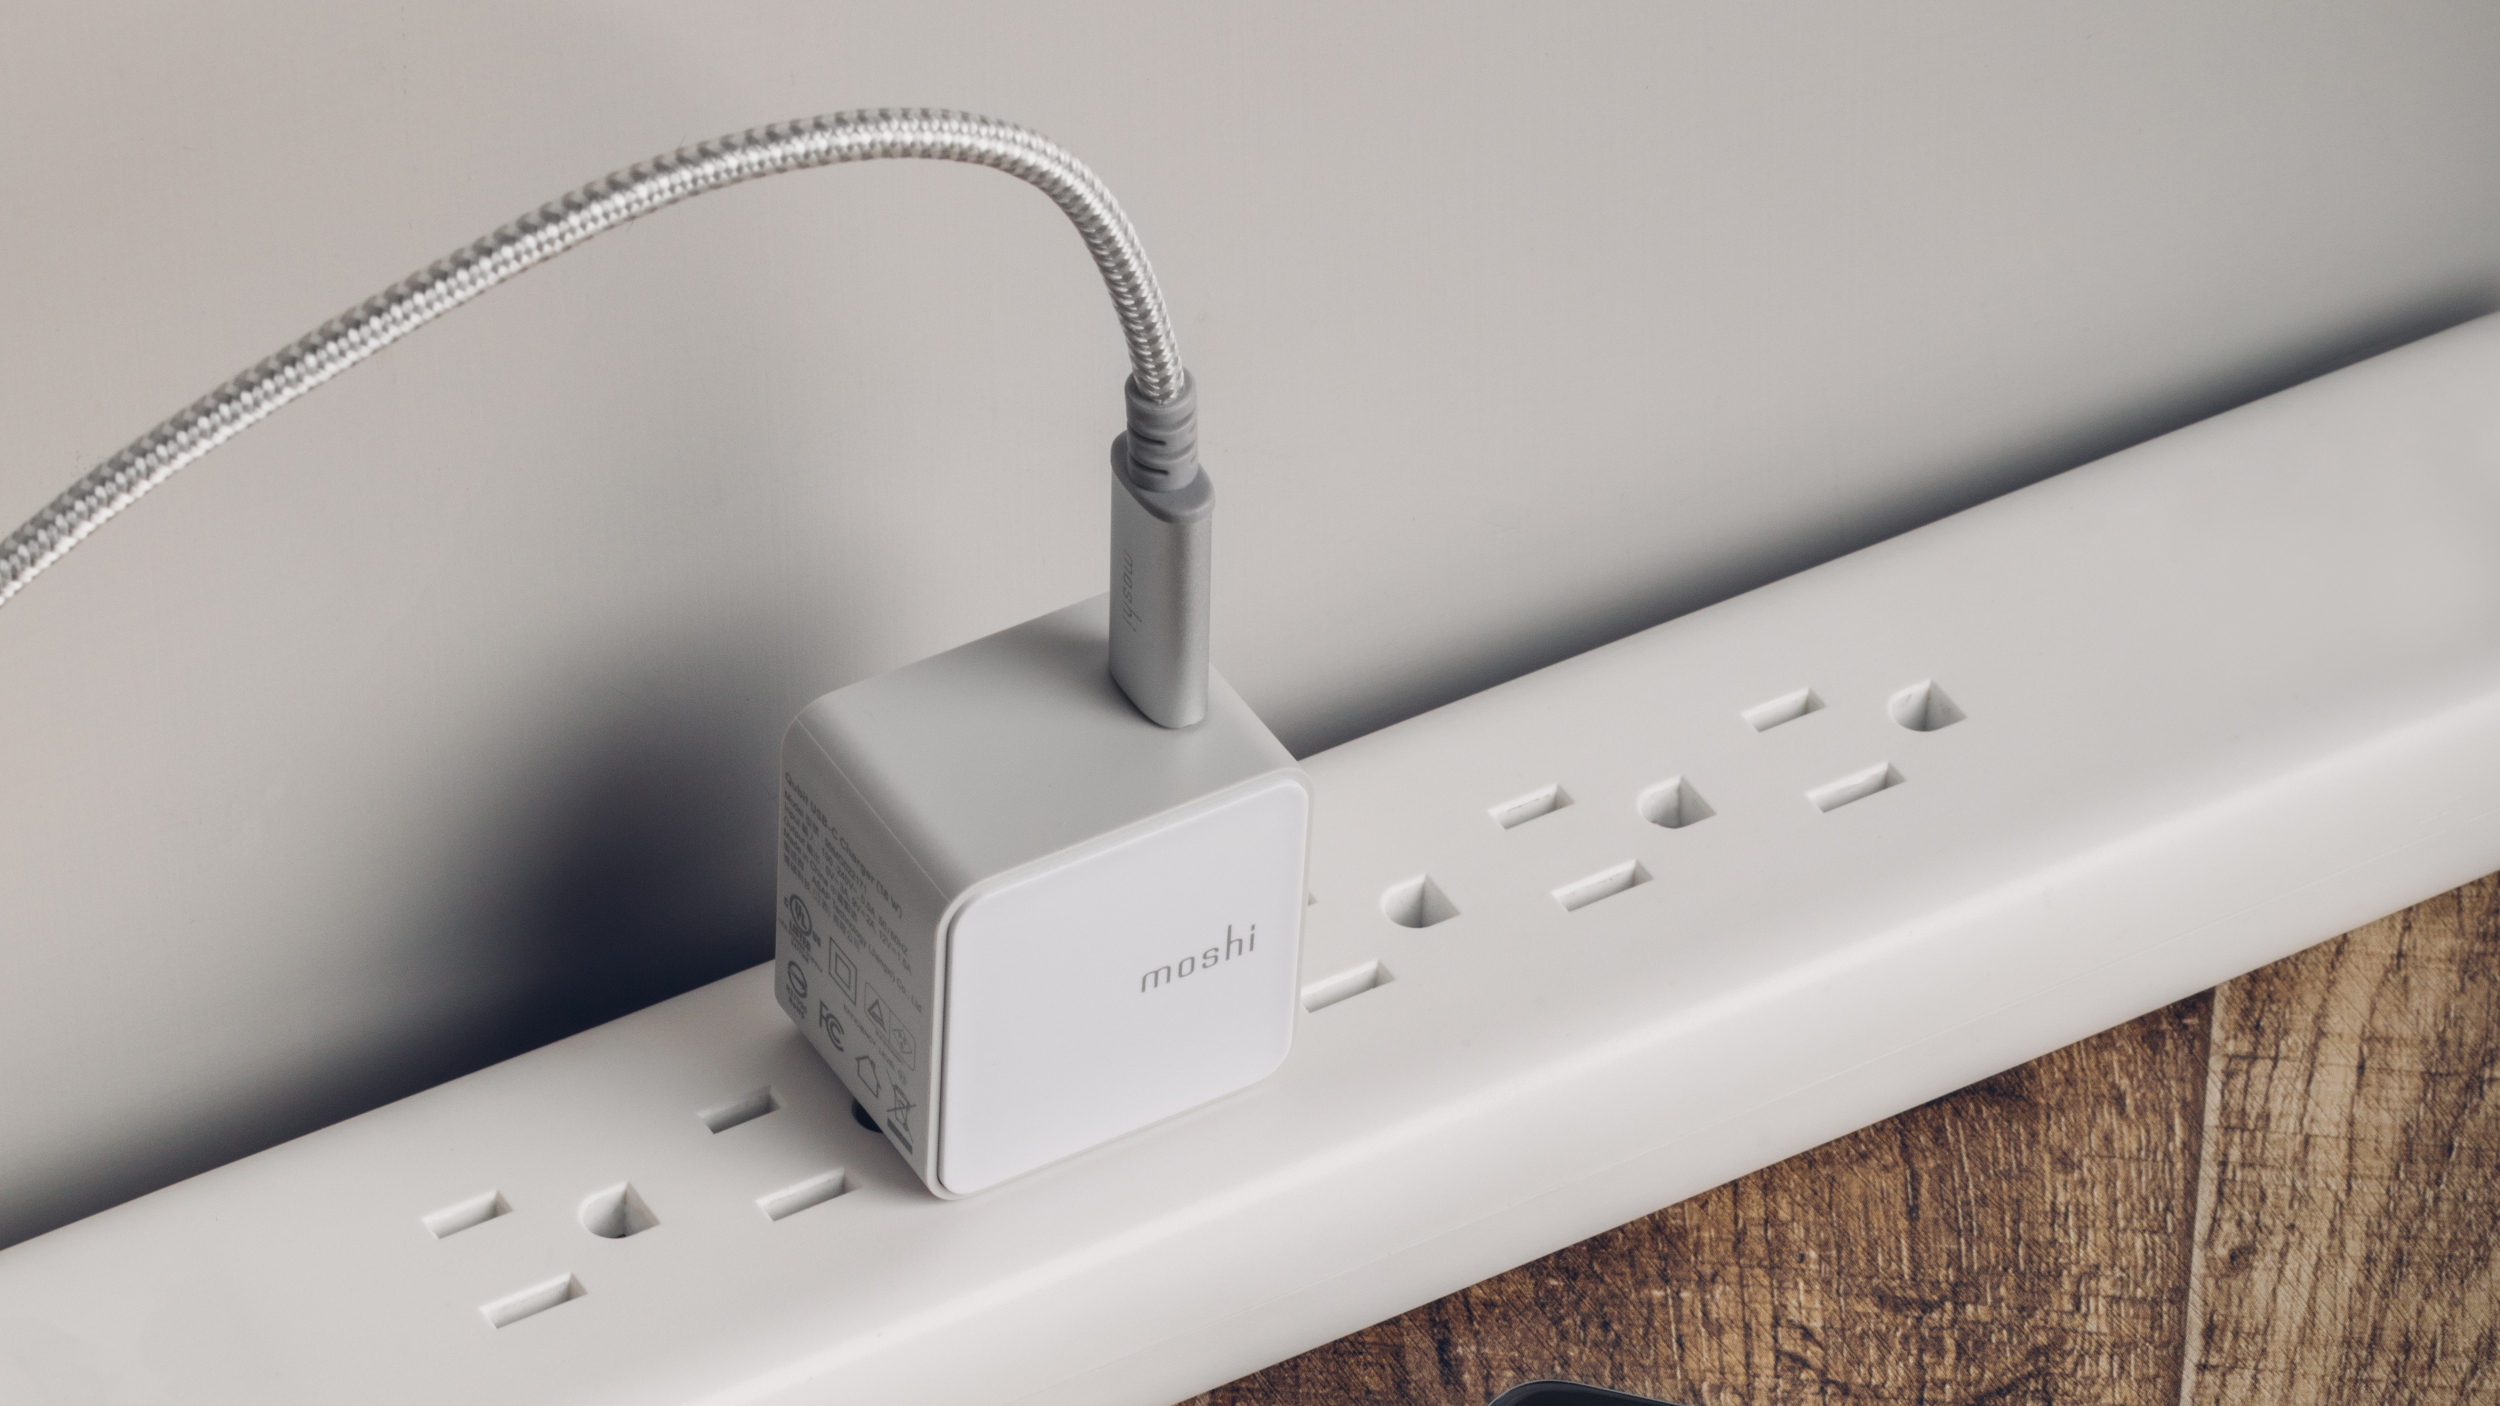 A Moshi Qubit charger connected to a power strip charging a Samsung Galaxy smartphone